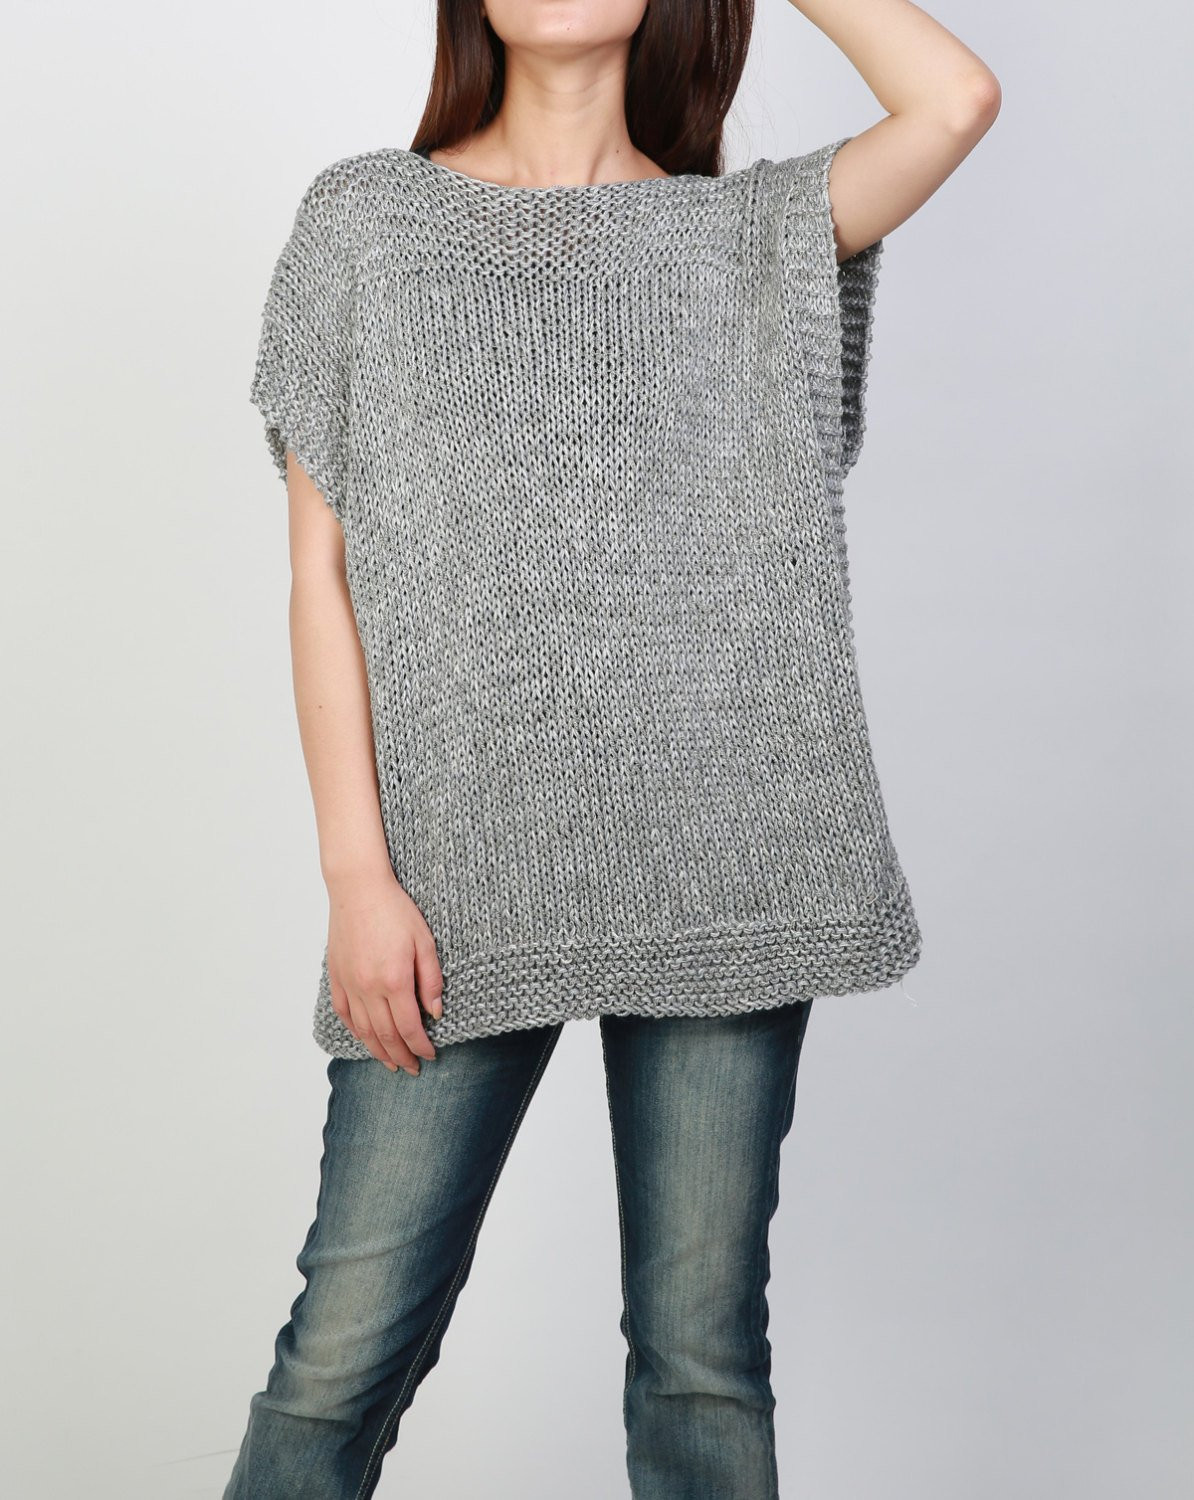 Hand knit Tunic sweater grey eco cotton woman sweater vest